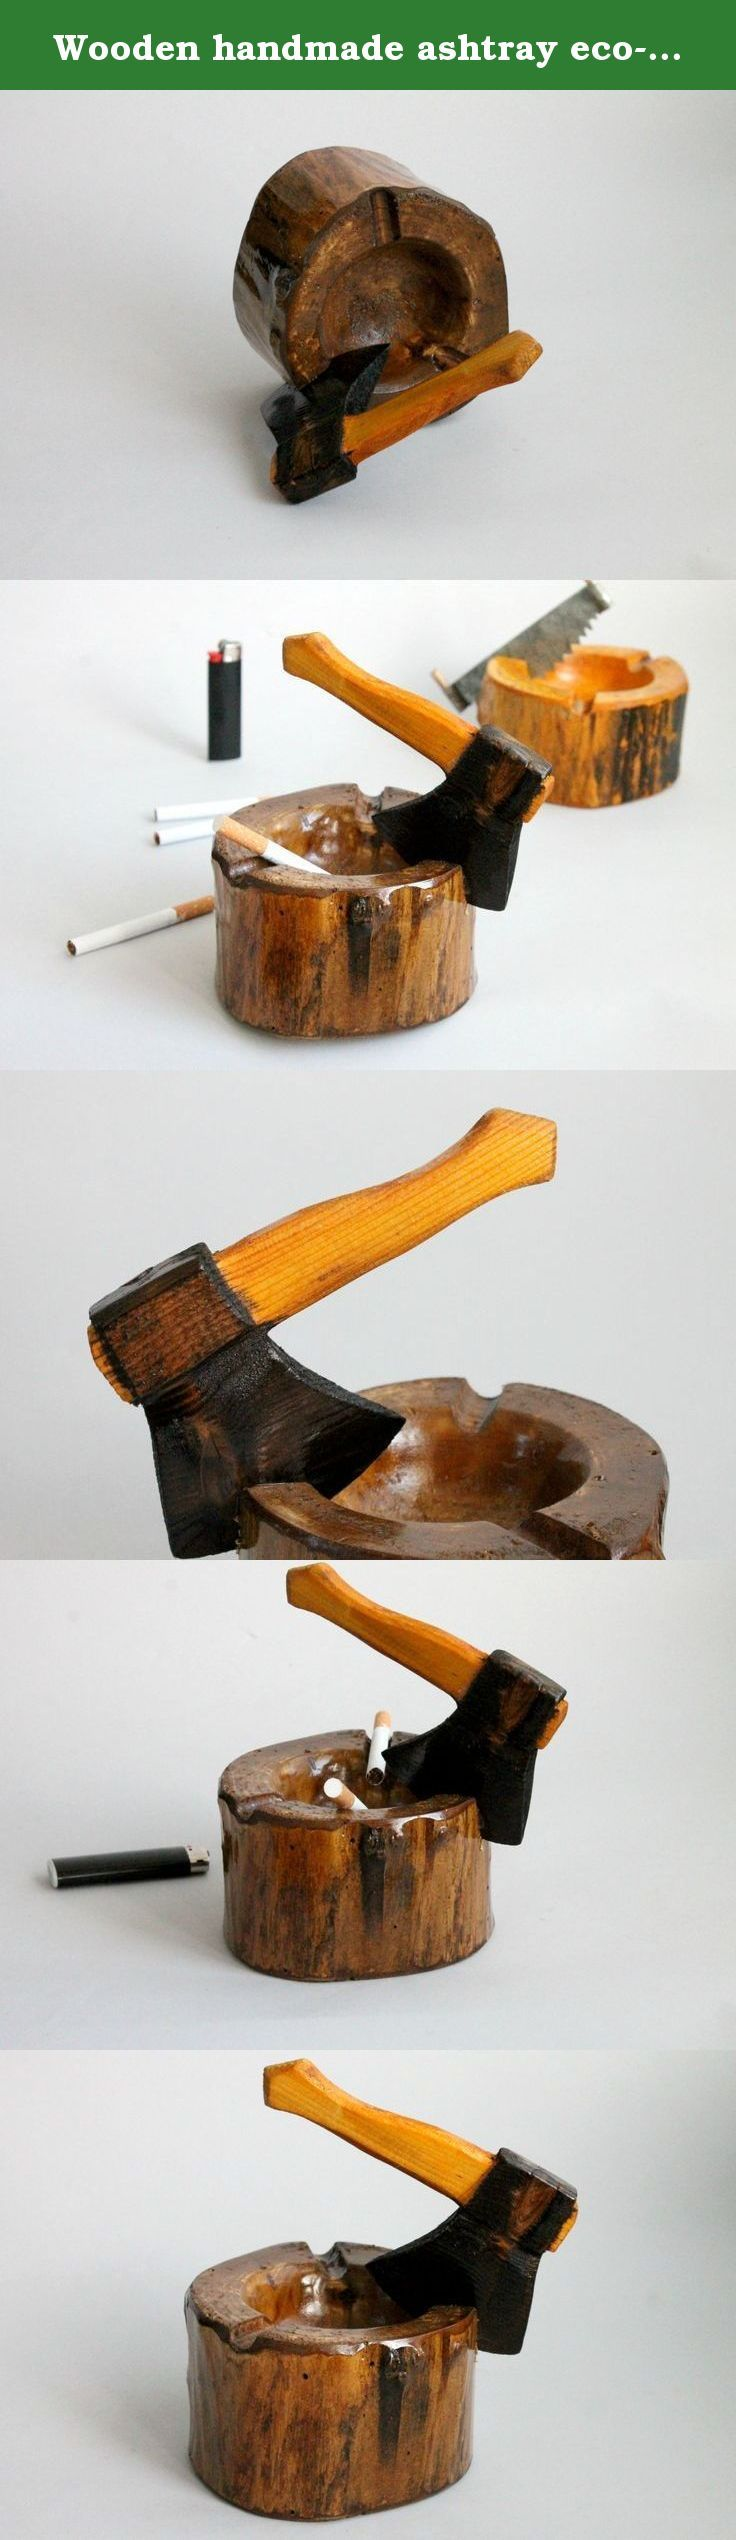 Wooden handmade ashtray eco-friendly. Pure natural,pollution-free,let people enjoy the pleasure of returning to nature Used advanced processing equipment,and the high temperature steam sterilization,moth-proofing,ultraviolet baking process refined,have high strength. Wooden ashtray is great tool for holding cigarette ash for home Keep your floor clean. With groove design for holding cigarette,also a great choice for table decoration Considering that we are very choosy for design and…